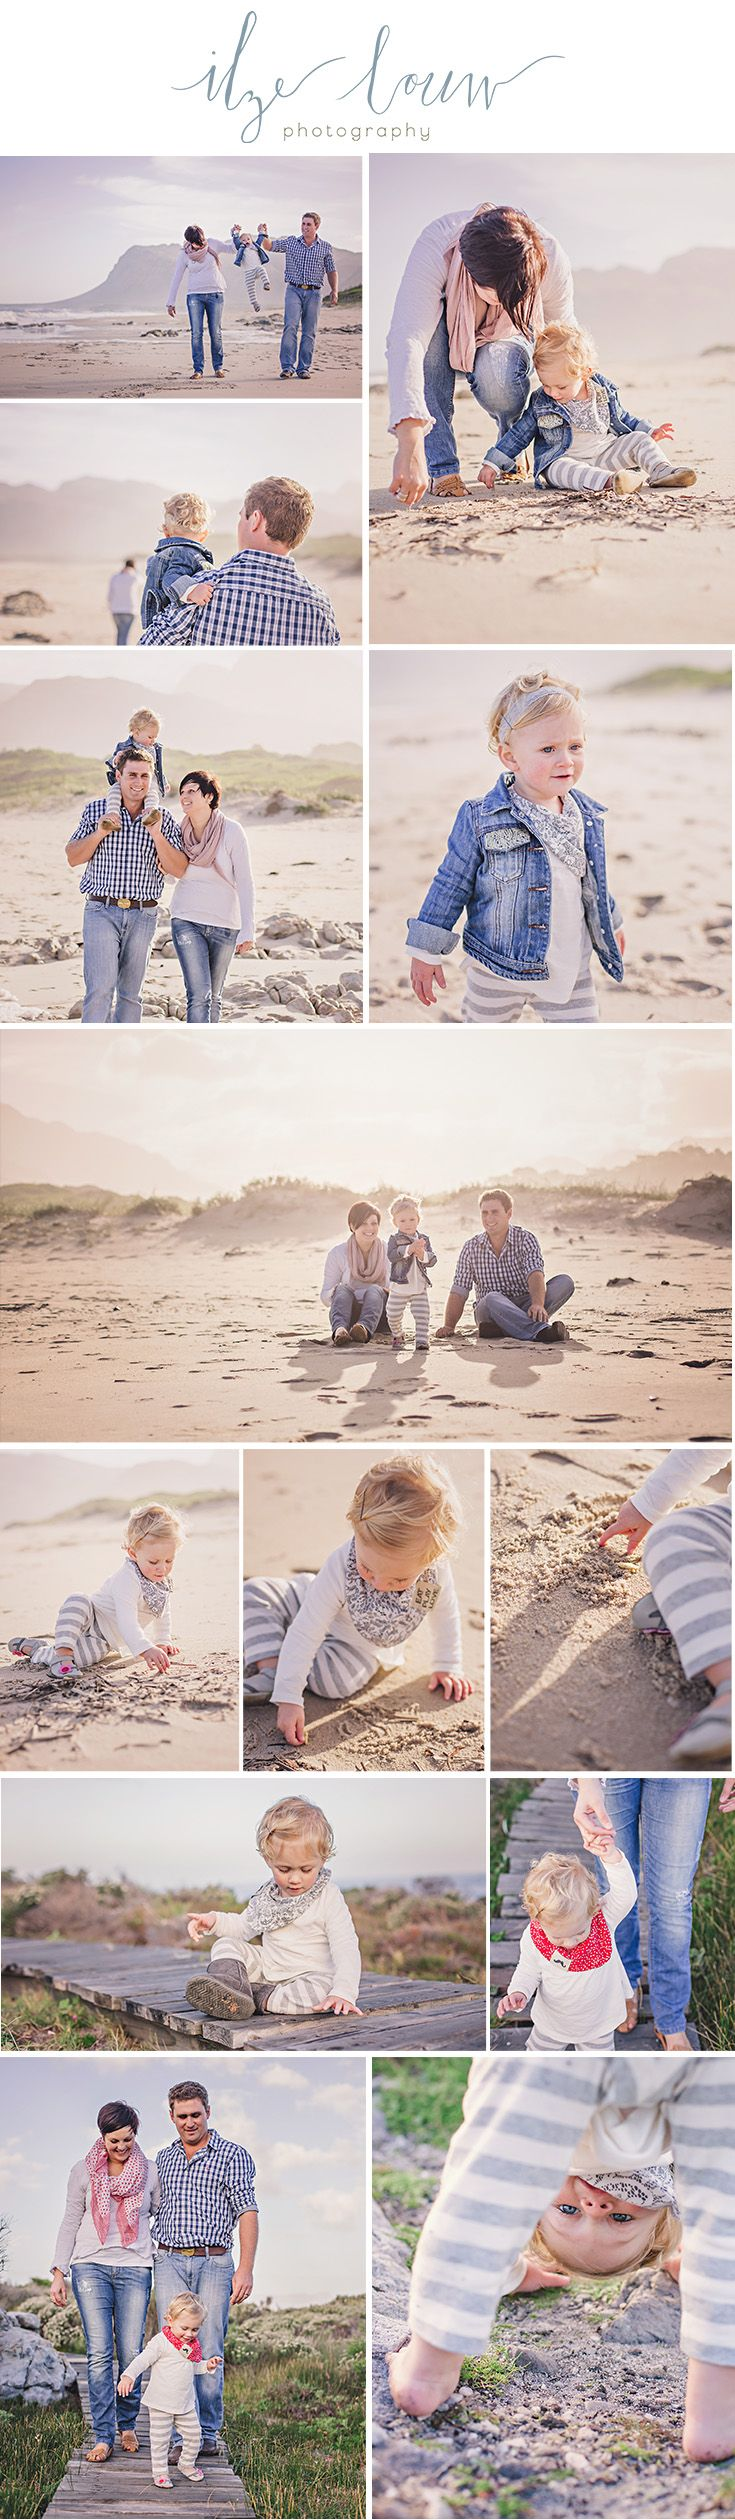 www.ilzelouw.co.za Lifestyle Family Photographer, Overberg, Western Cape, South Africa #lifestyle #family #photography #beach #sea #outdoor